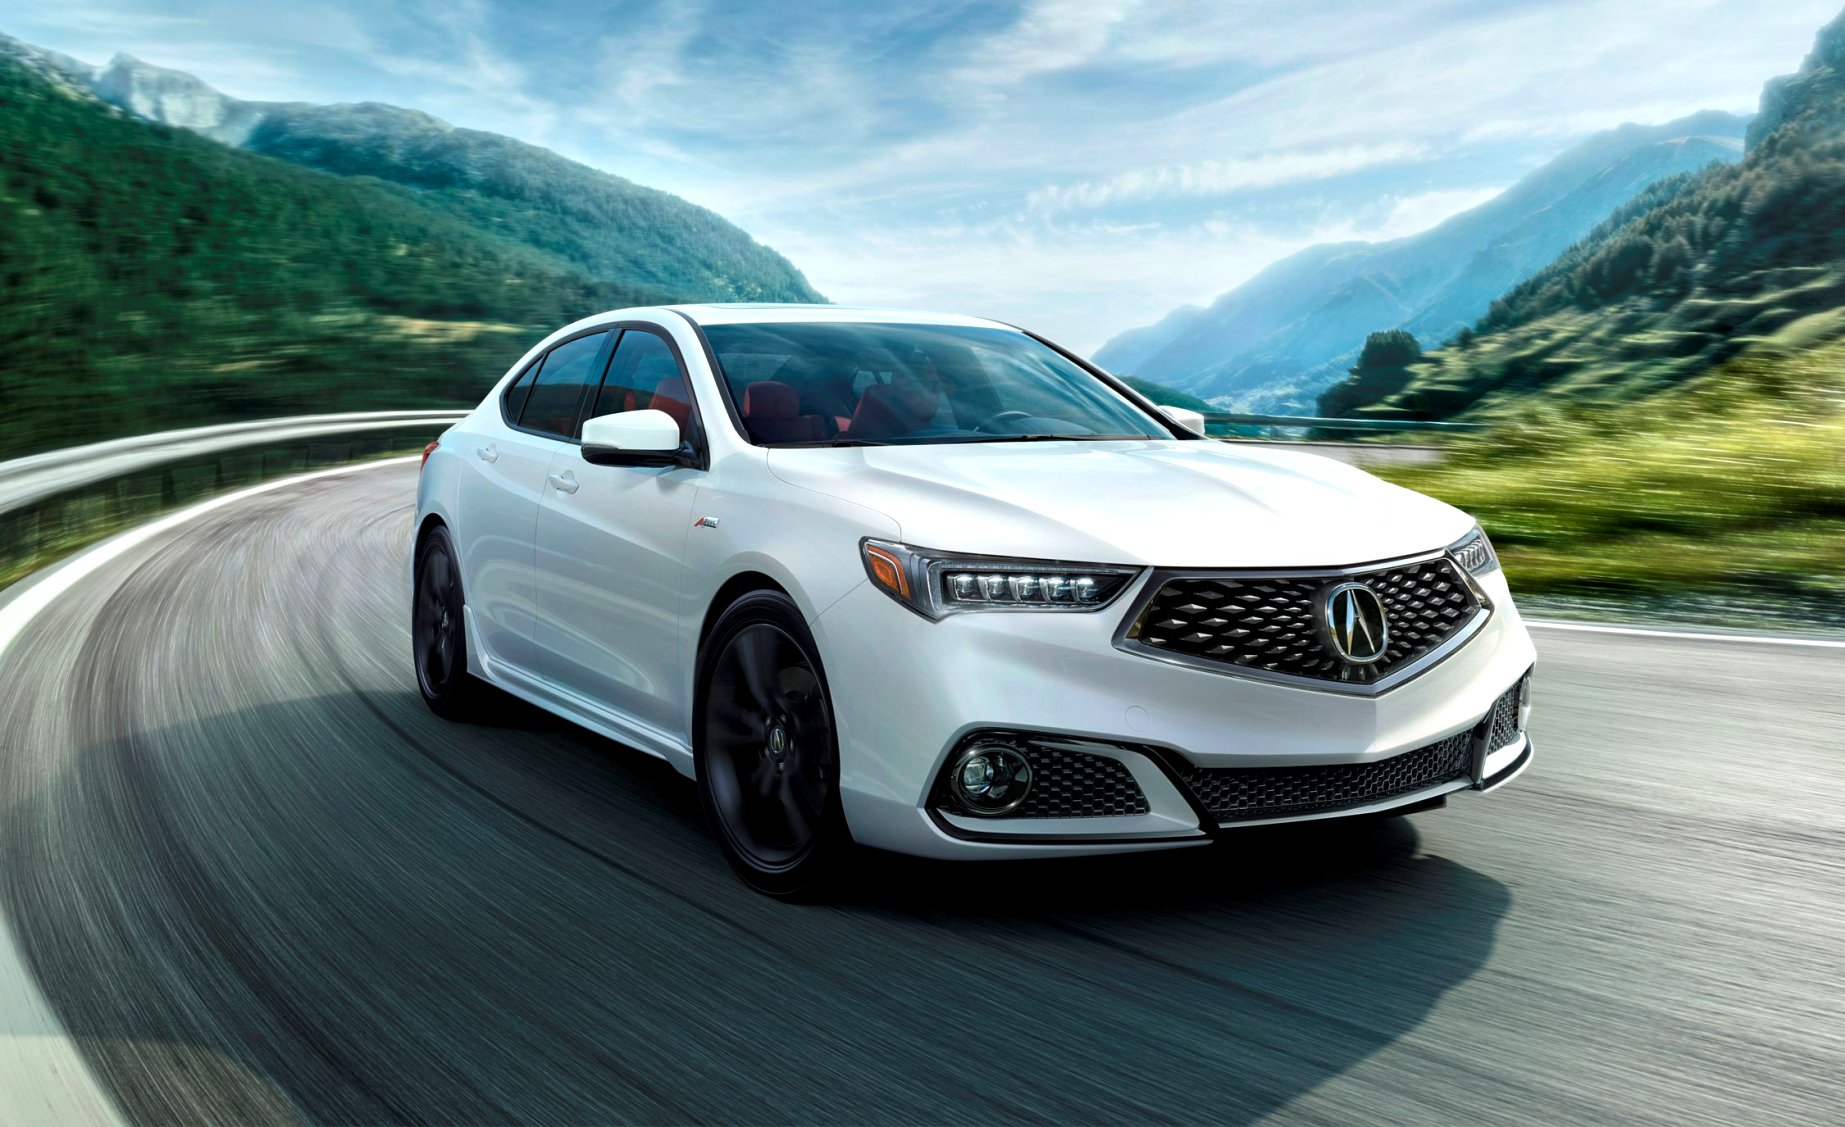 acura black friday deals 2020 Performance and New Engine